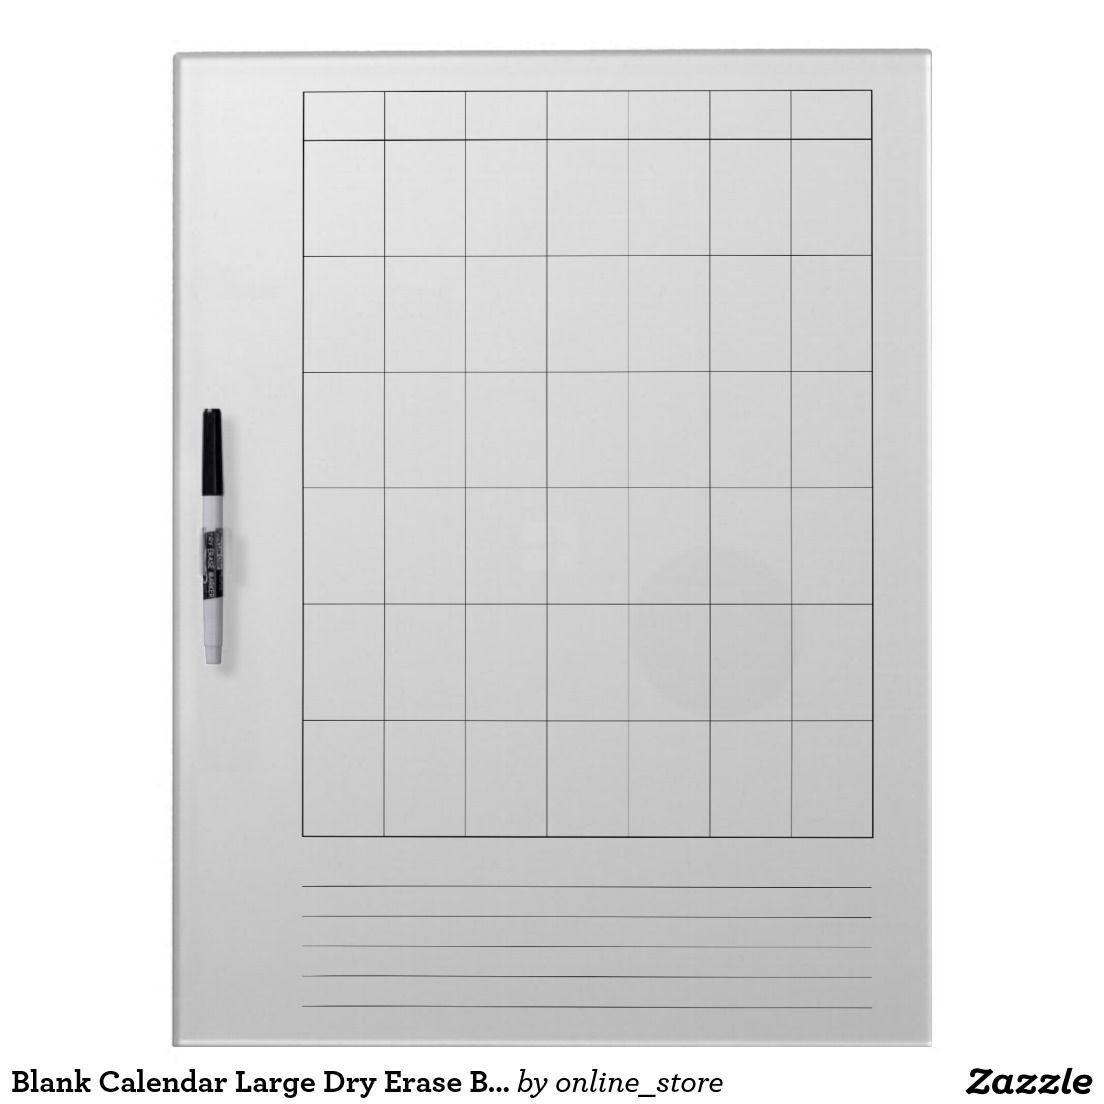 Blank Calendar Large Dry Erase Boards With Pen   Zazzle and ...